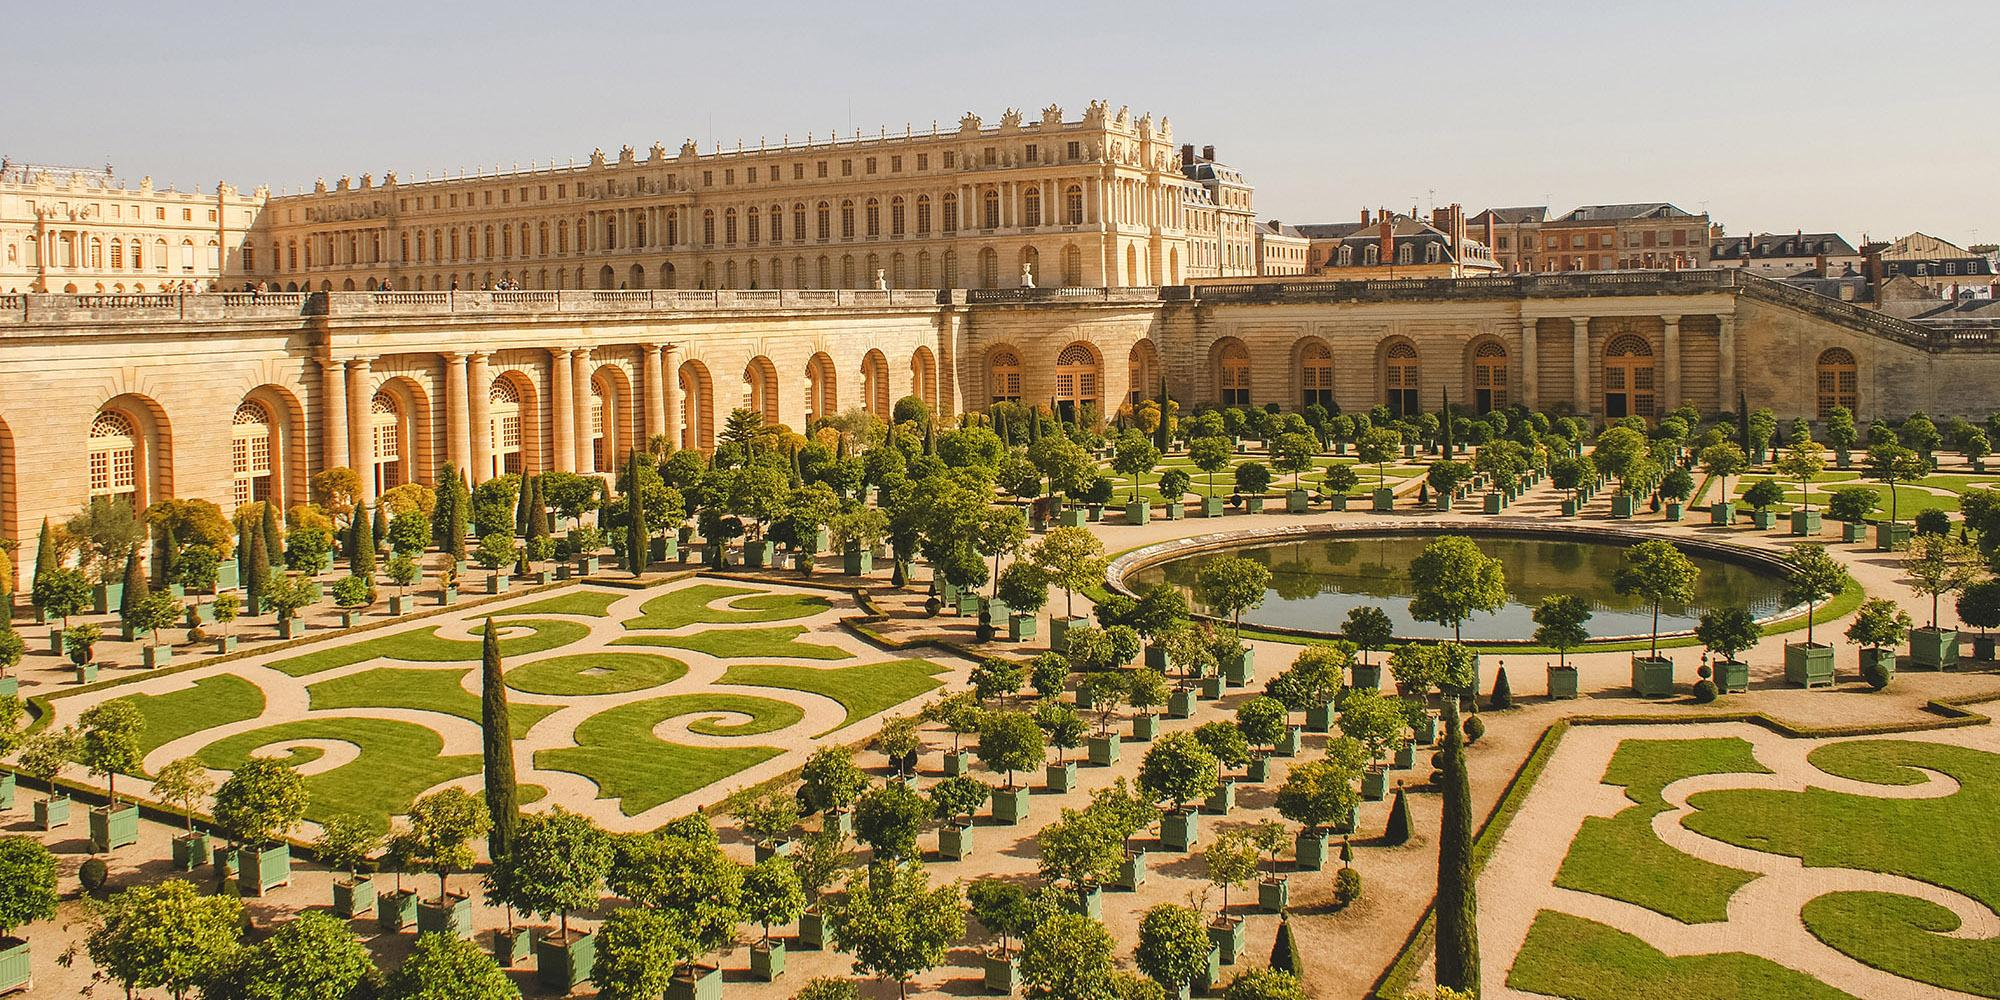 The Royal Palace in Versailles. – © Bartlomiej Rybacki